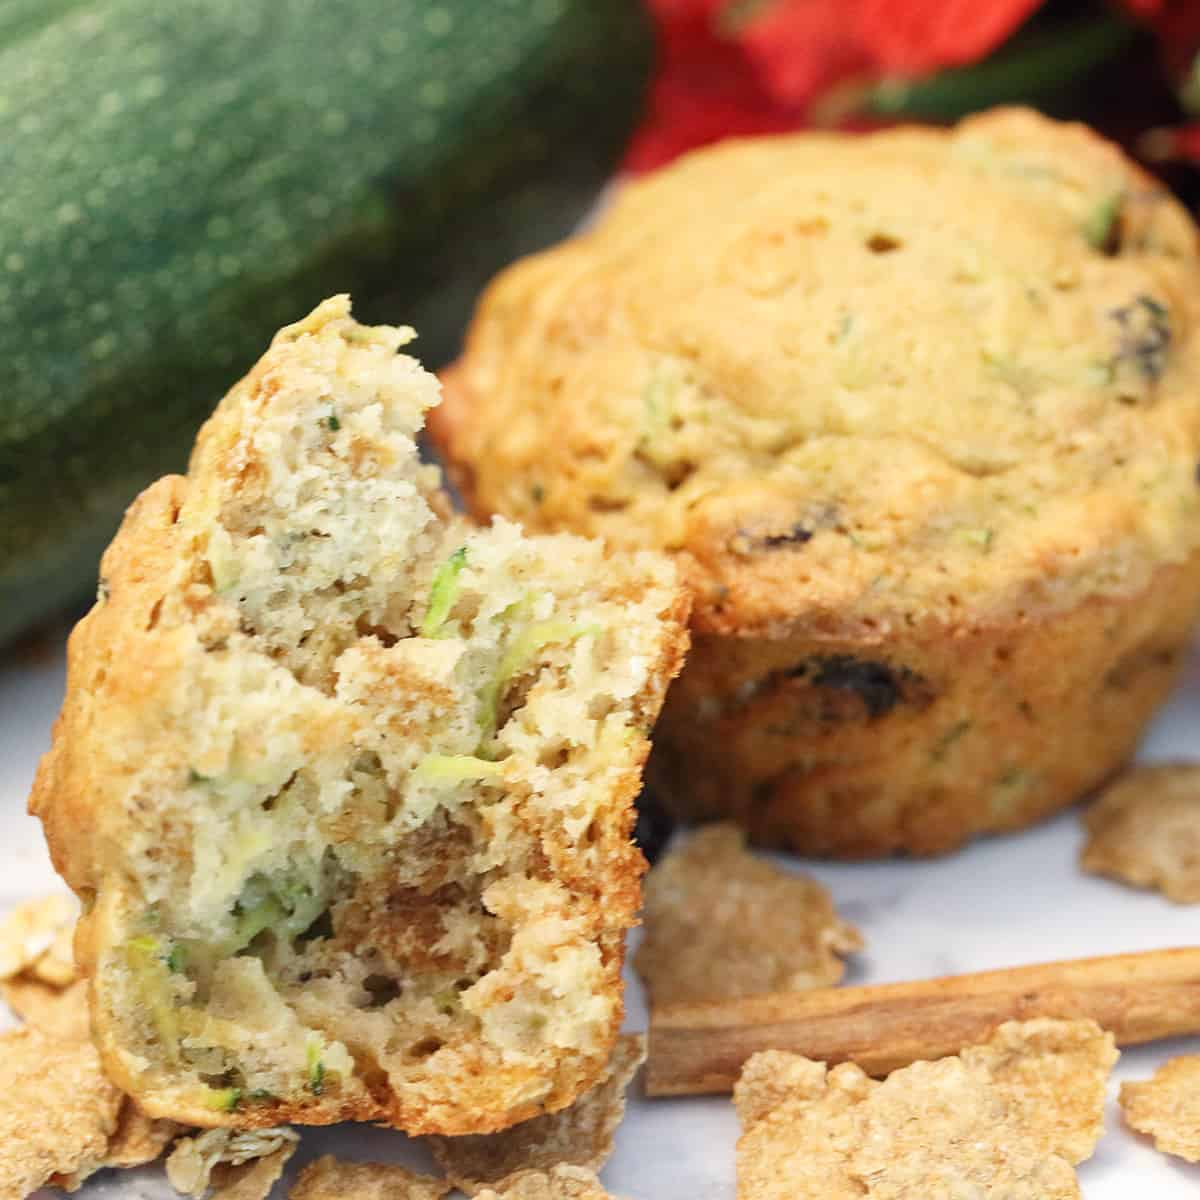 Bite of muffin on white table with zucchini in back.